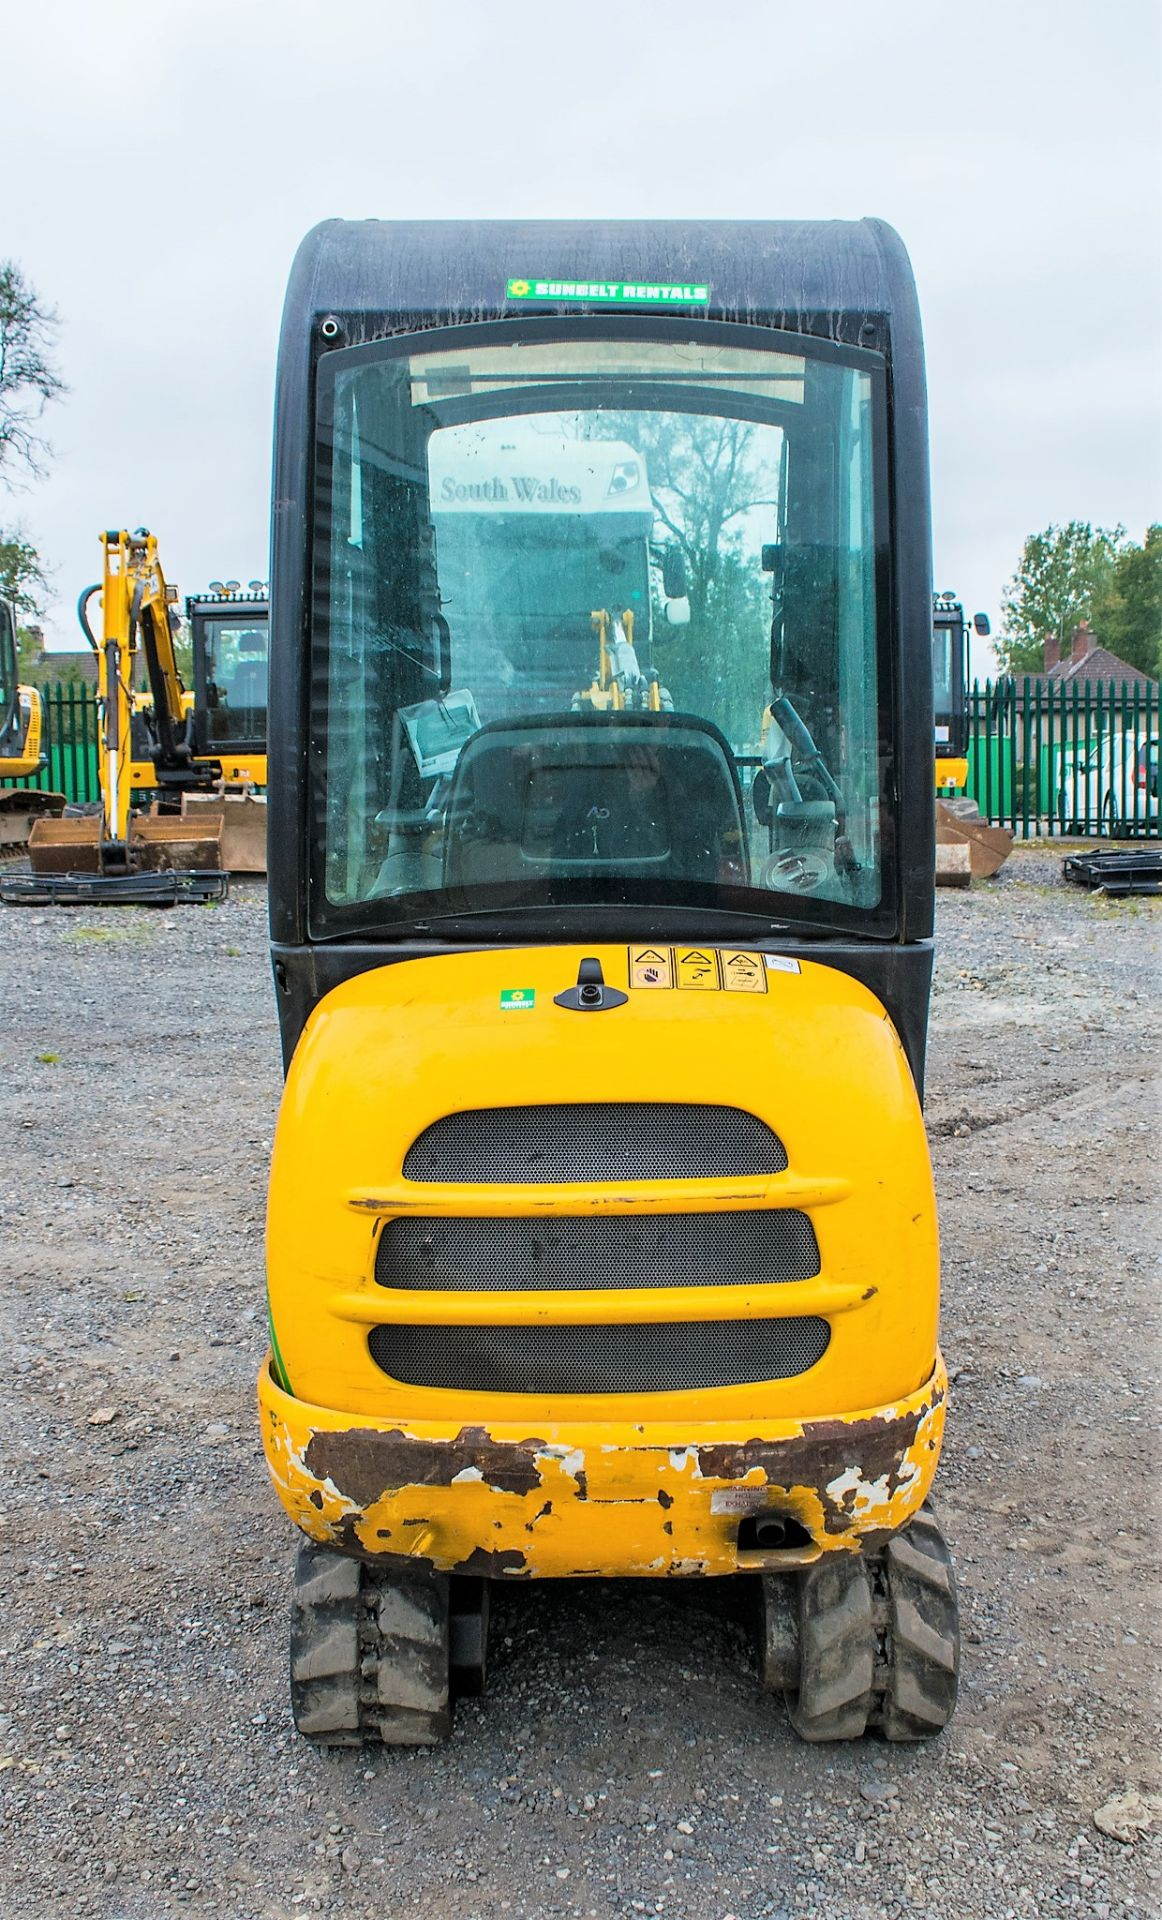 JCB 8016 1.6 tonne rubber tracked excavator  Year: 2015 S/N: 1733 Recorded Hours: 1861 A669405 - Image 6 of 20